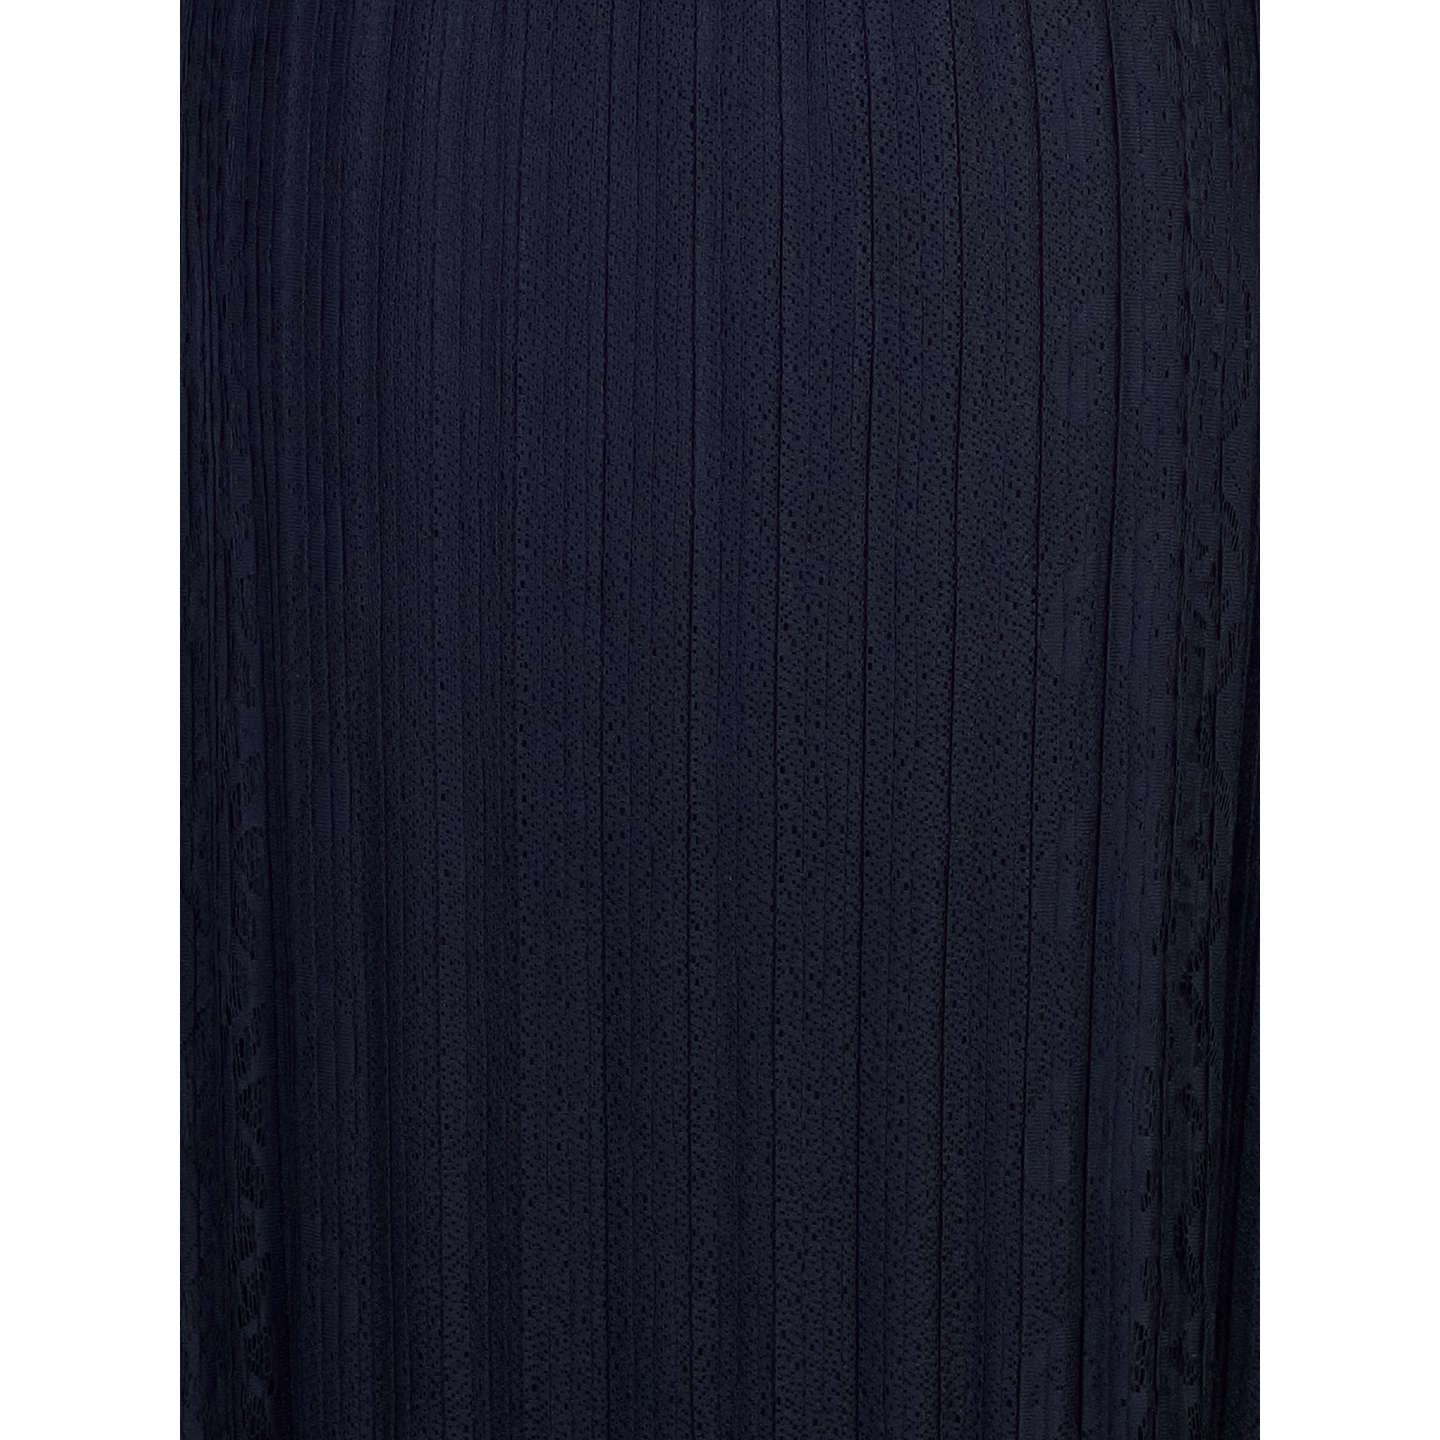 BuyChesca Crush Pleat Dress, Navy, 12-14 Online at johnlewis.com